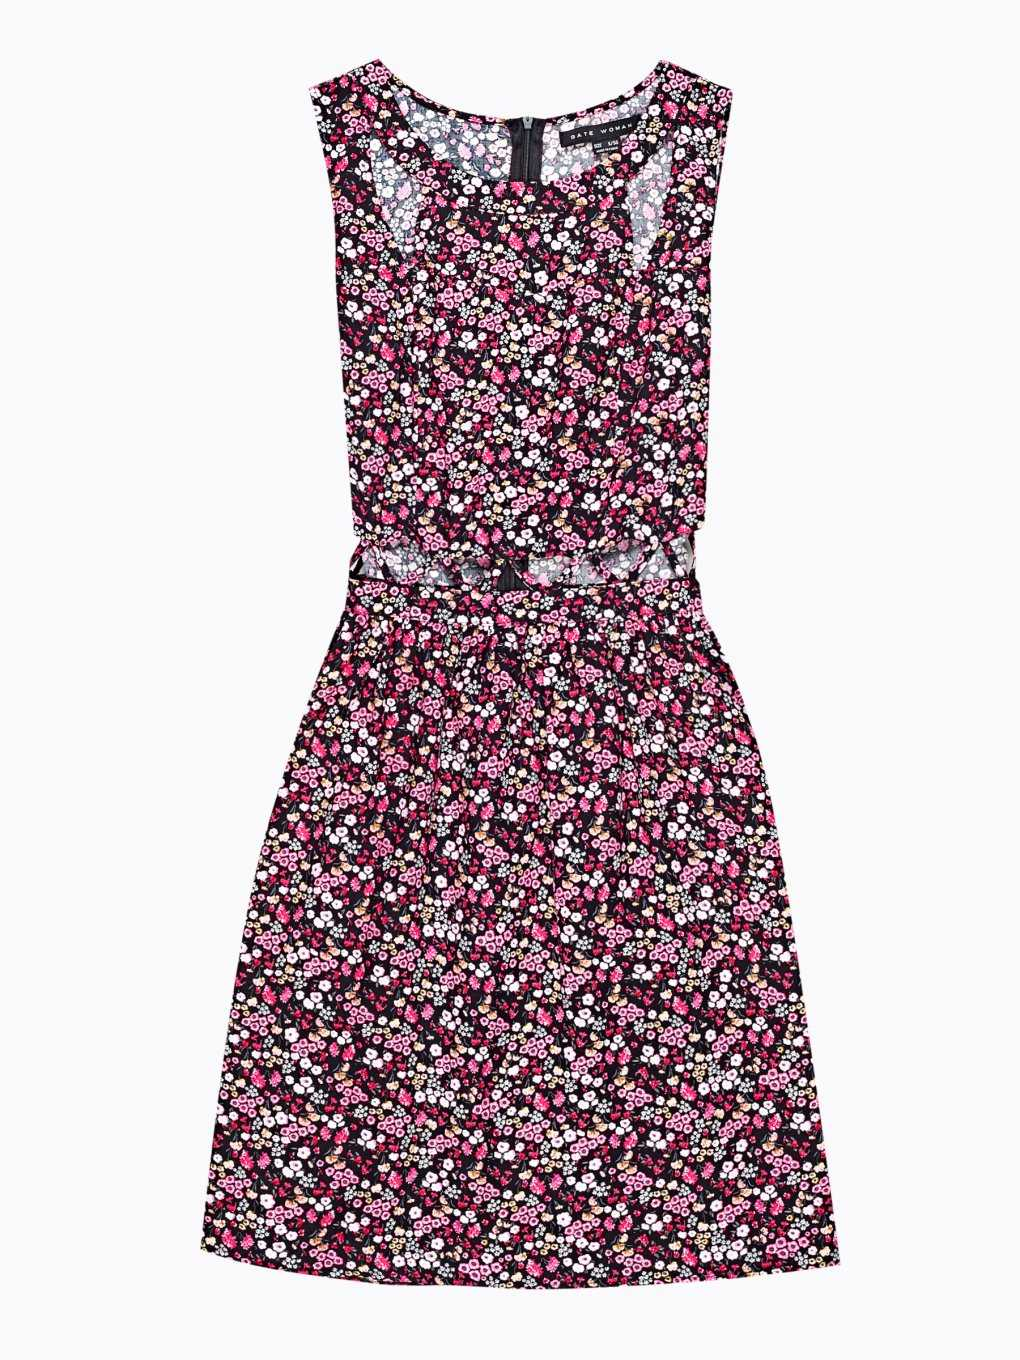 Floral print dress with cut-out details